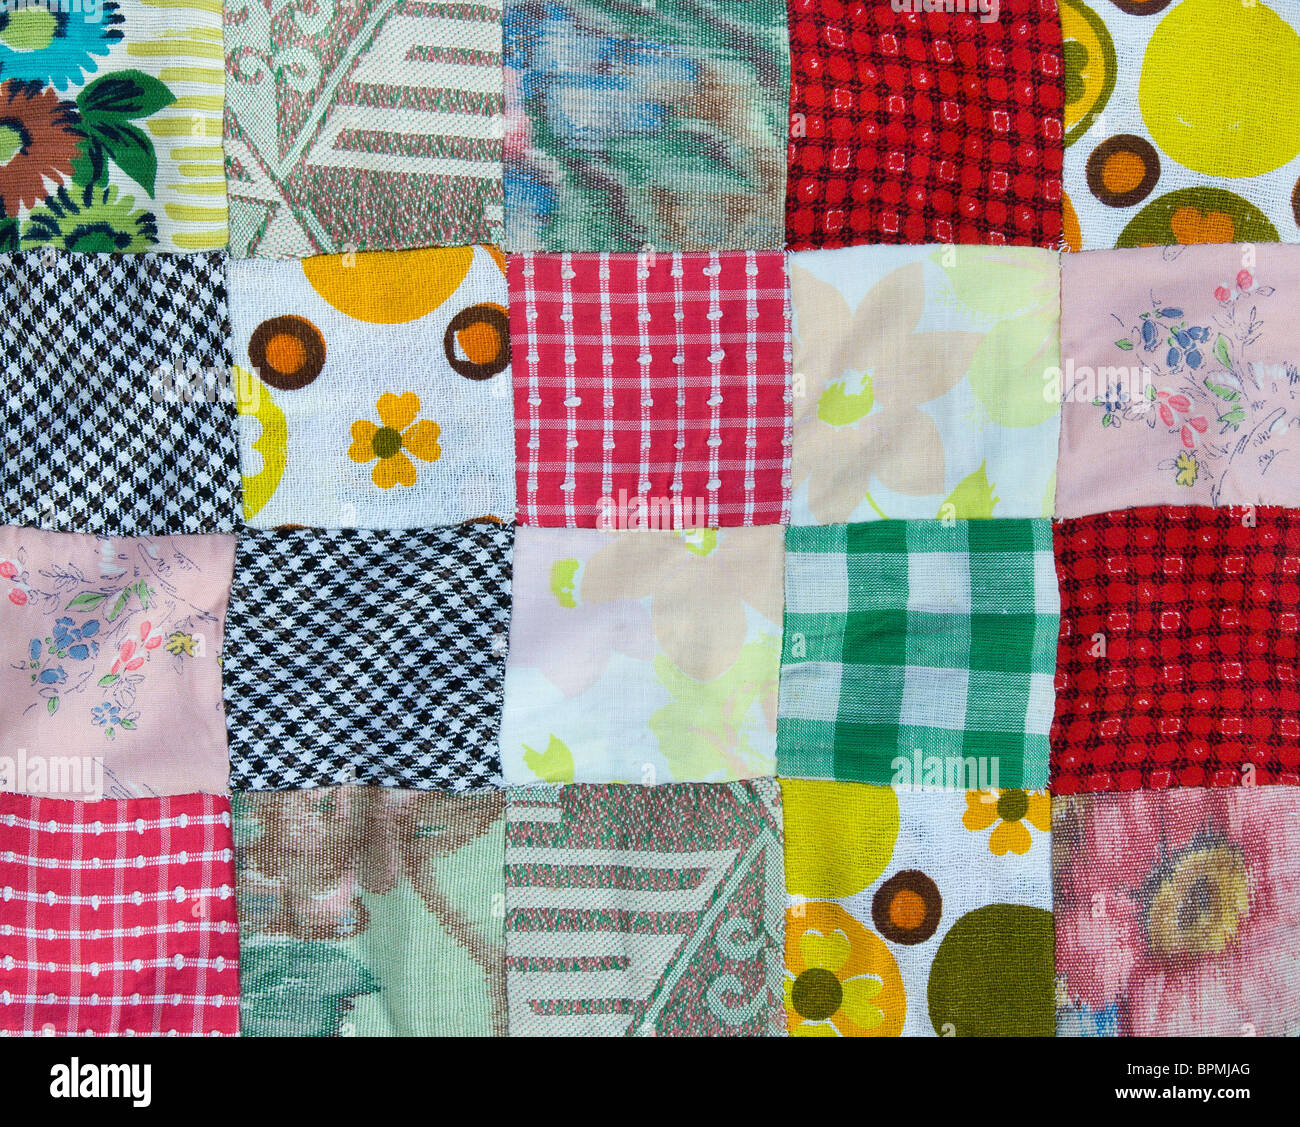 Fond Patchwork Photo Stock